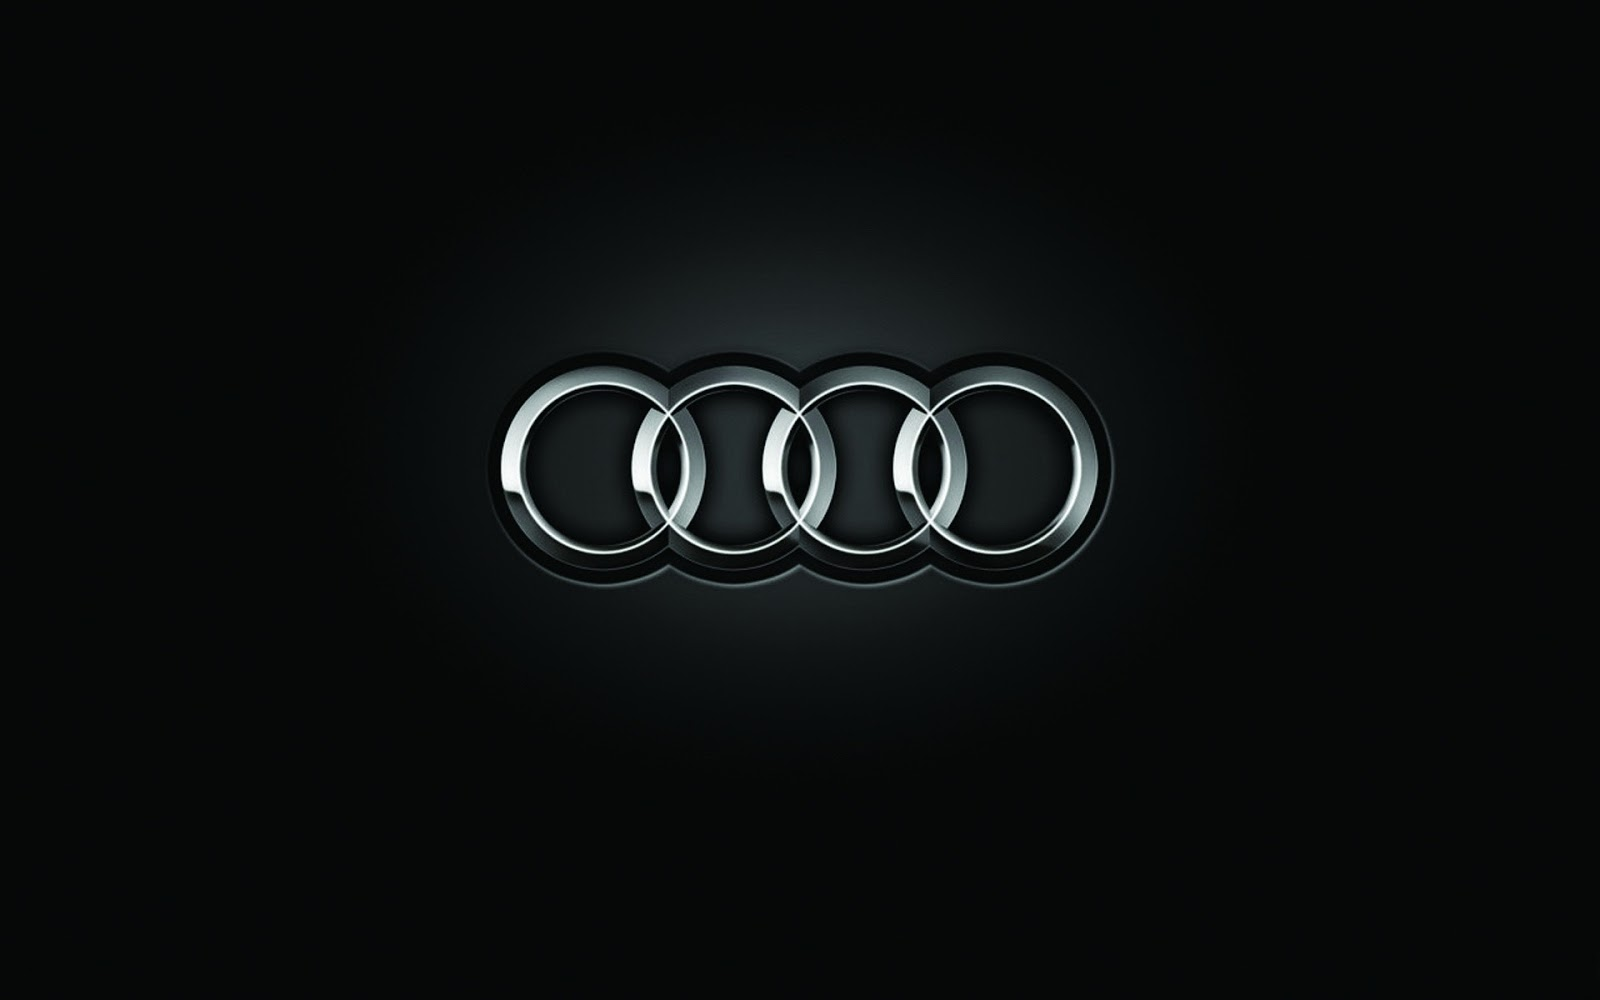 Audi Logo Audi Car Symbol Meaning And History Car Brand Names Com